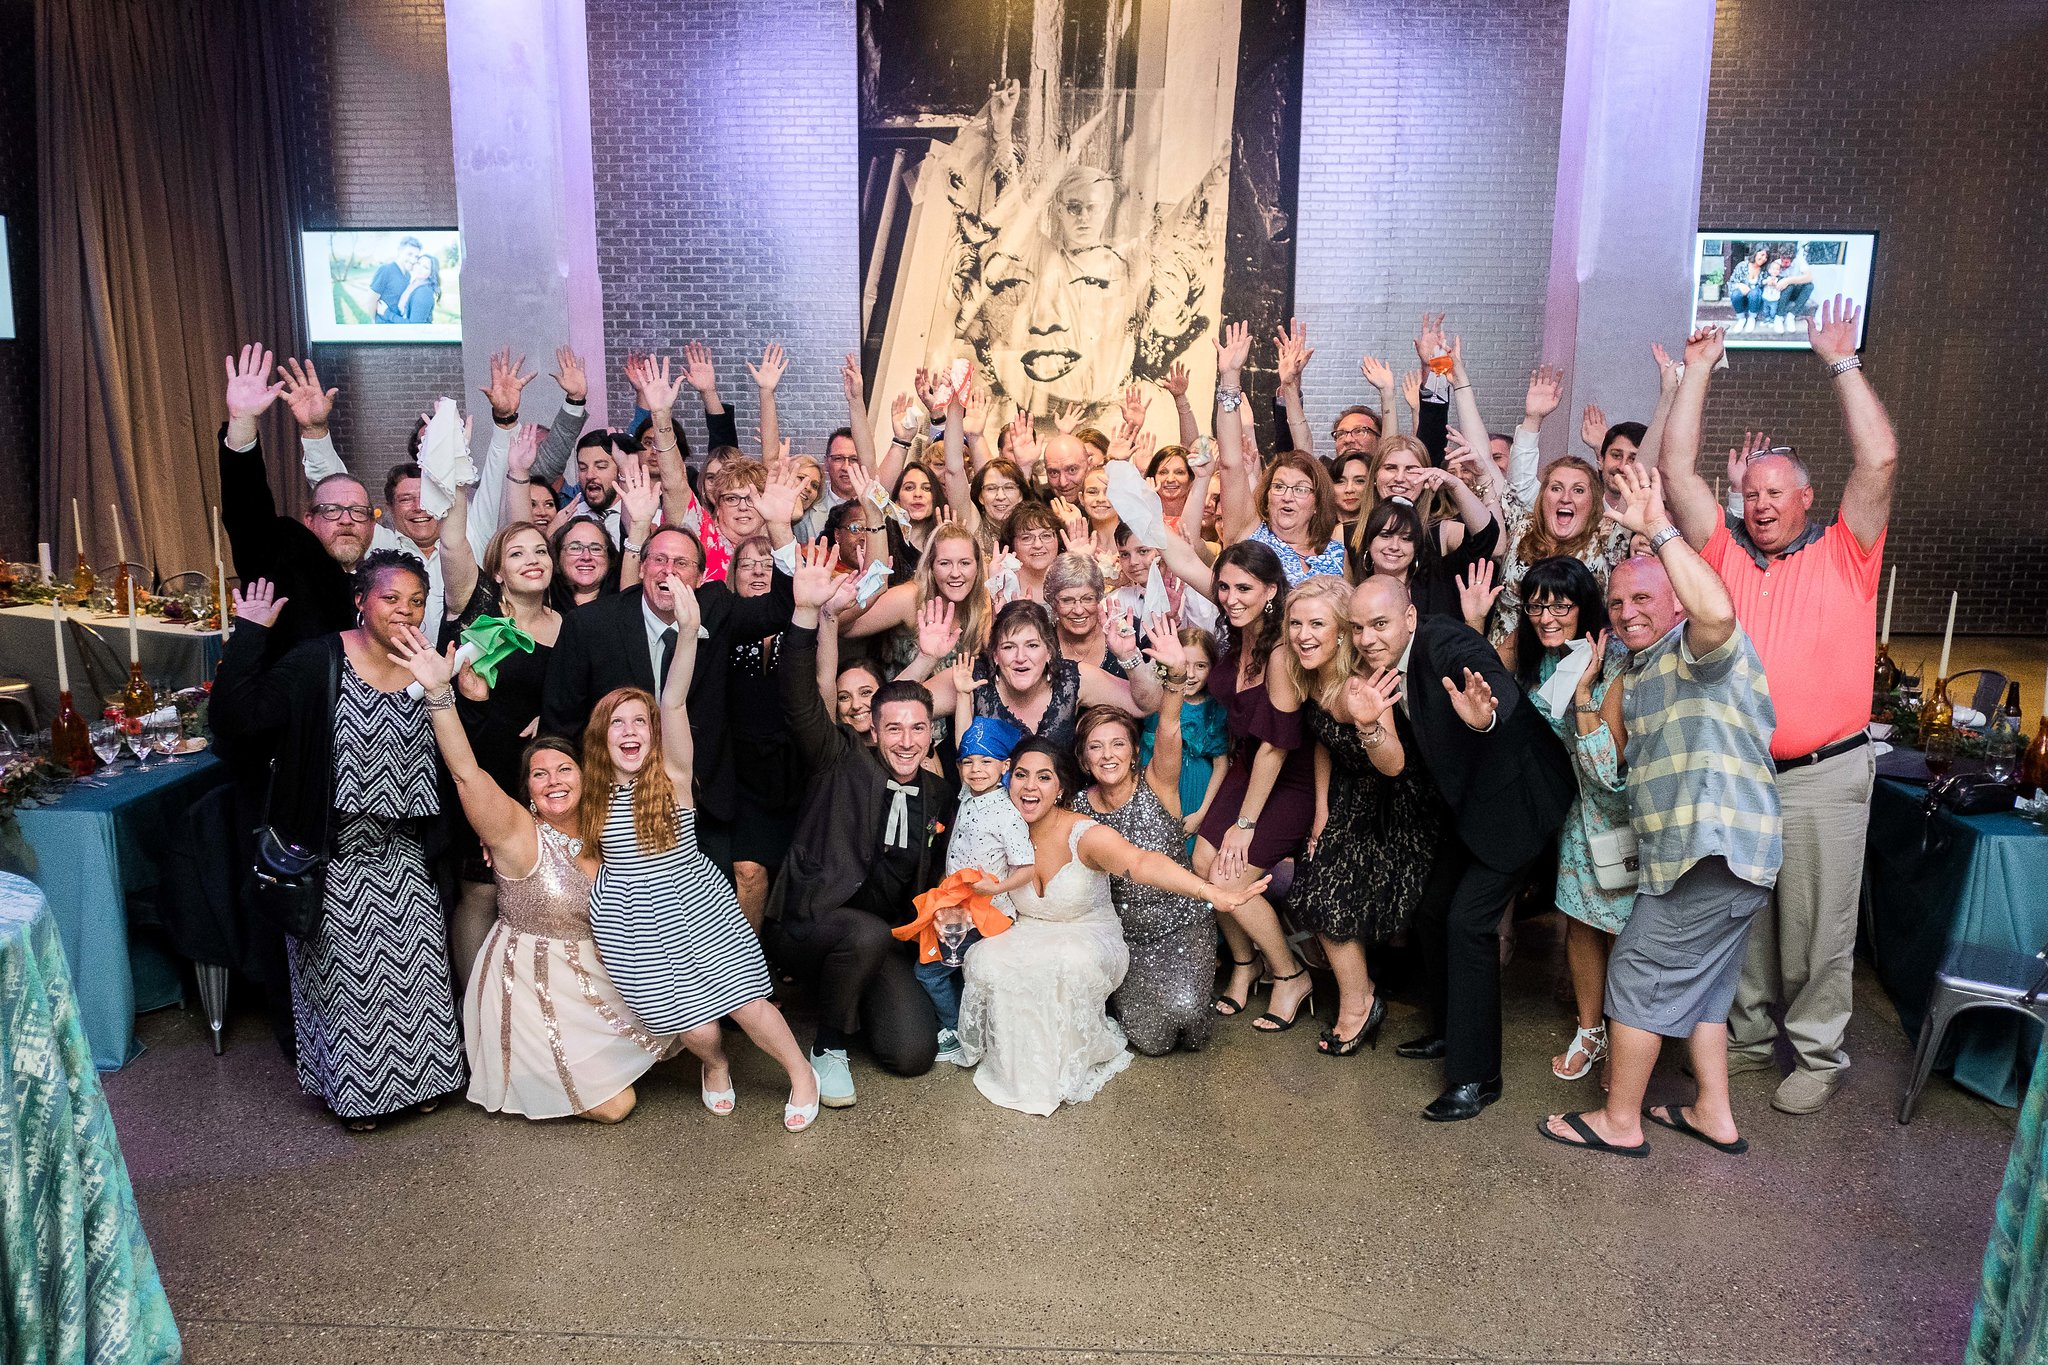 Fun family picture at Pittsburgh wedding